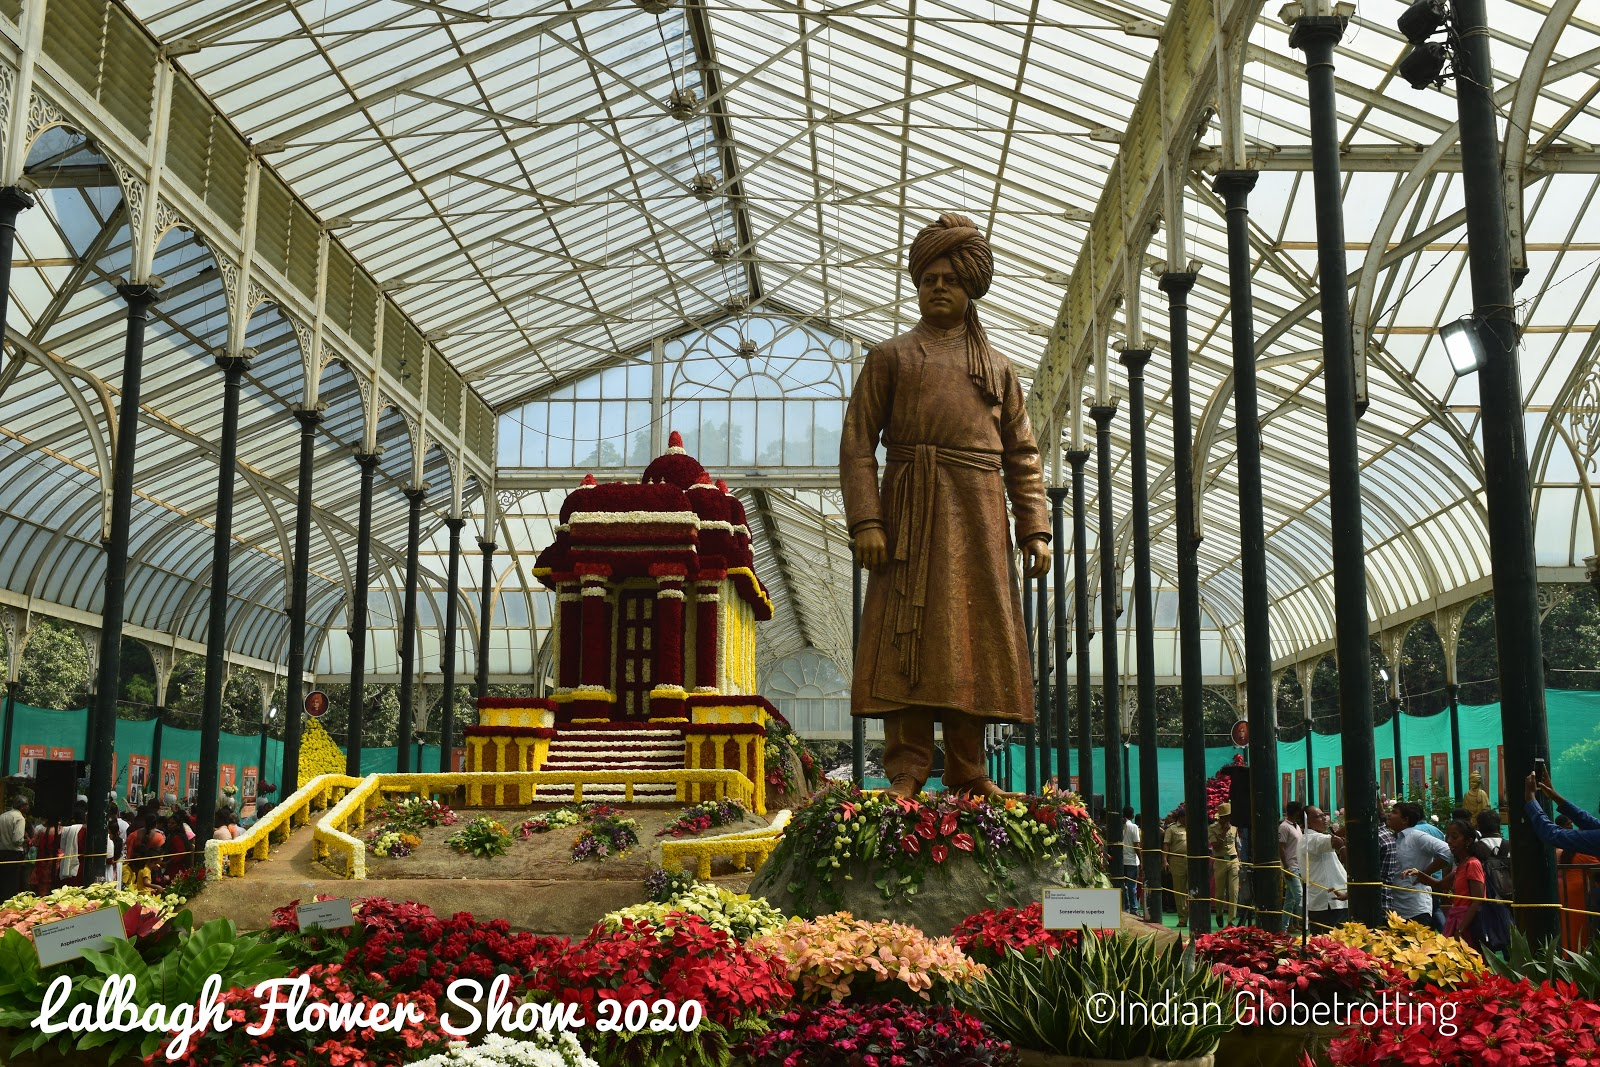 lalbagh flower show 2020 at bangalore